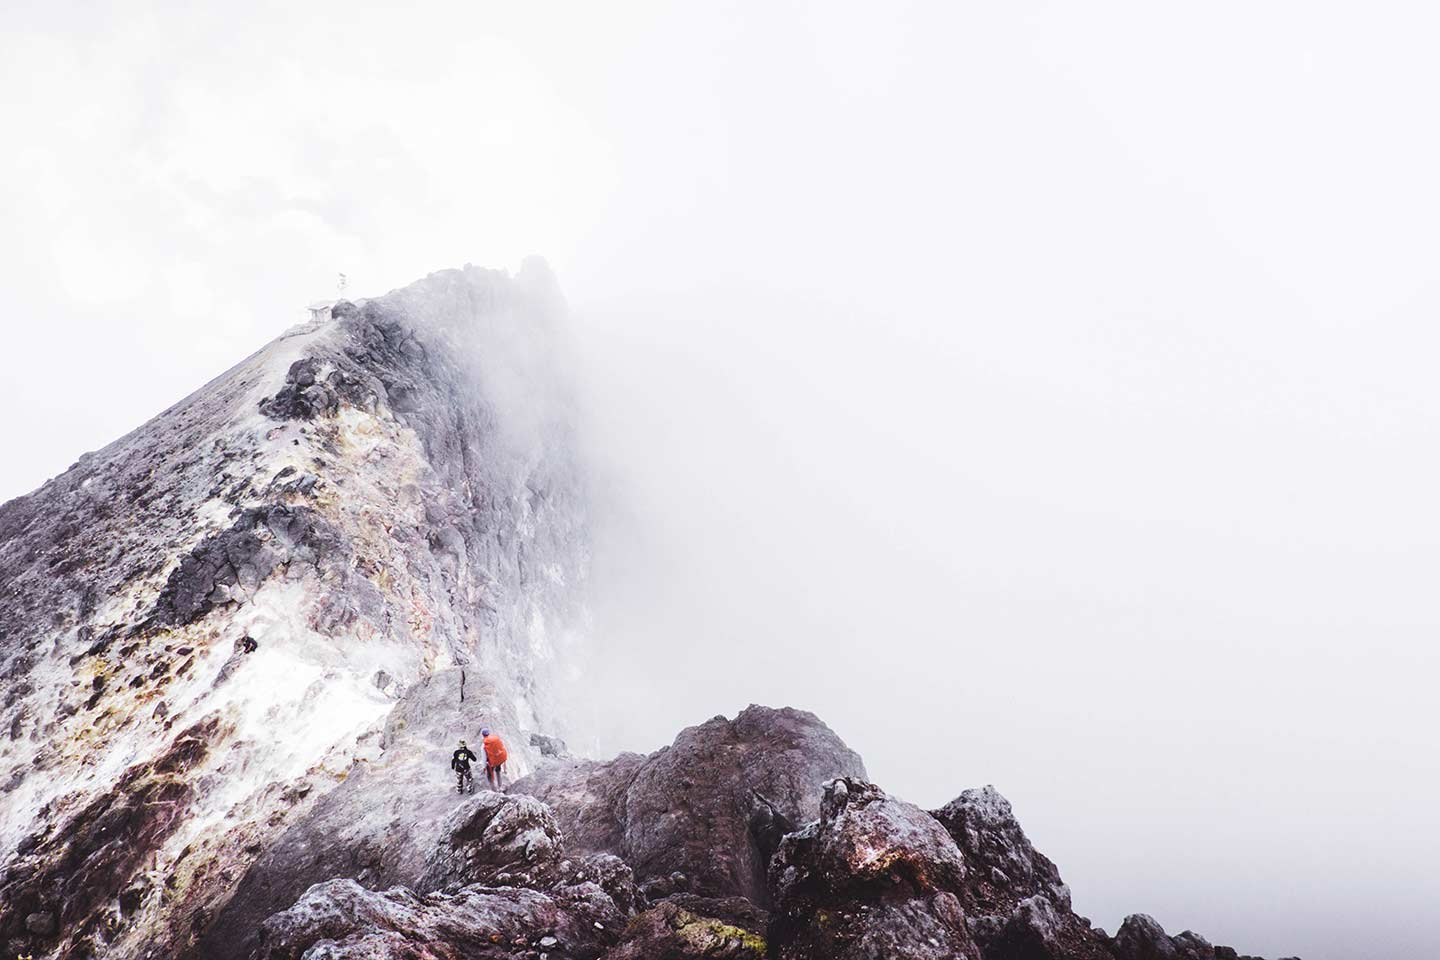 A ridge line of a mountain shows through a thick layer of clouds.  Two people can be seen walking along the ridge line.